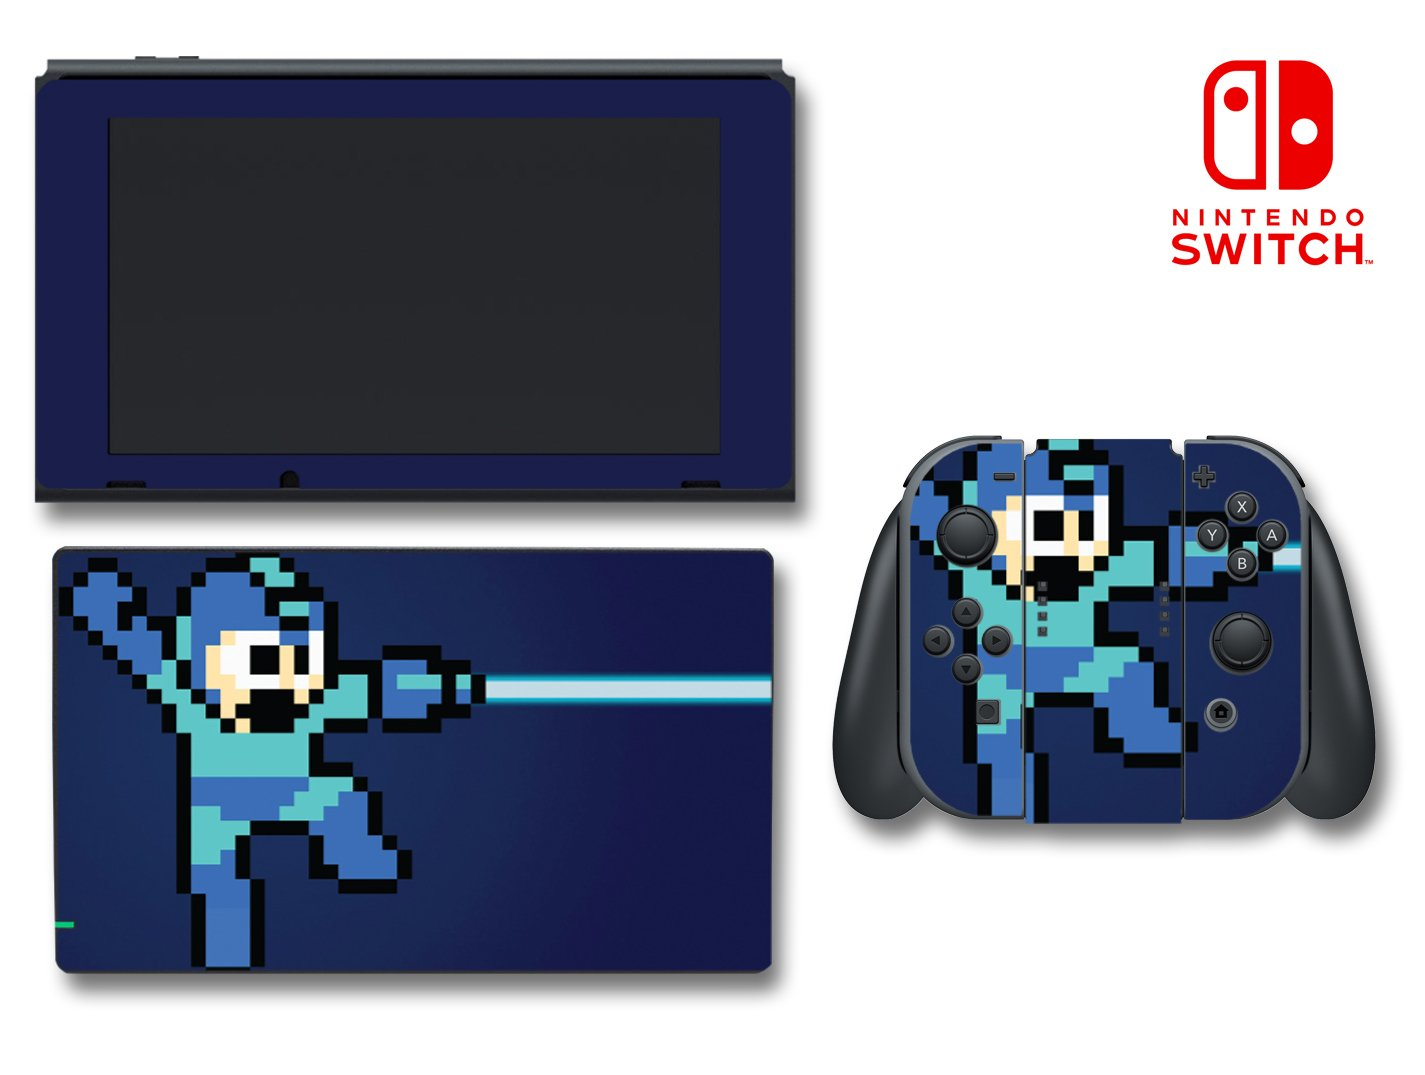 Mega Man Rockman Megaman Rock Retro Pixel Video Game Vinyl Decal Skin Sticker Cover for Nintendo Switch Console System